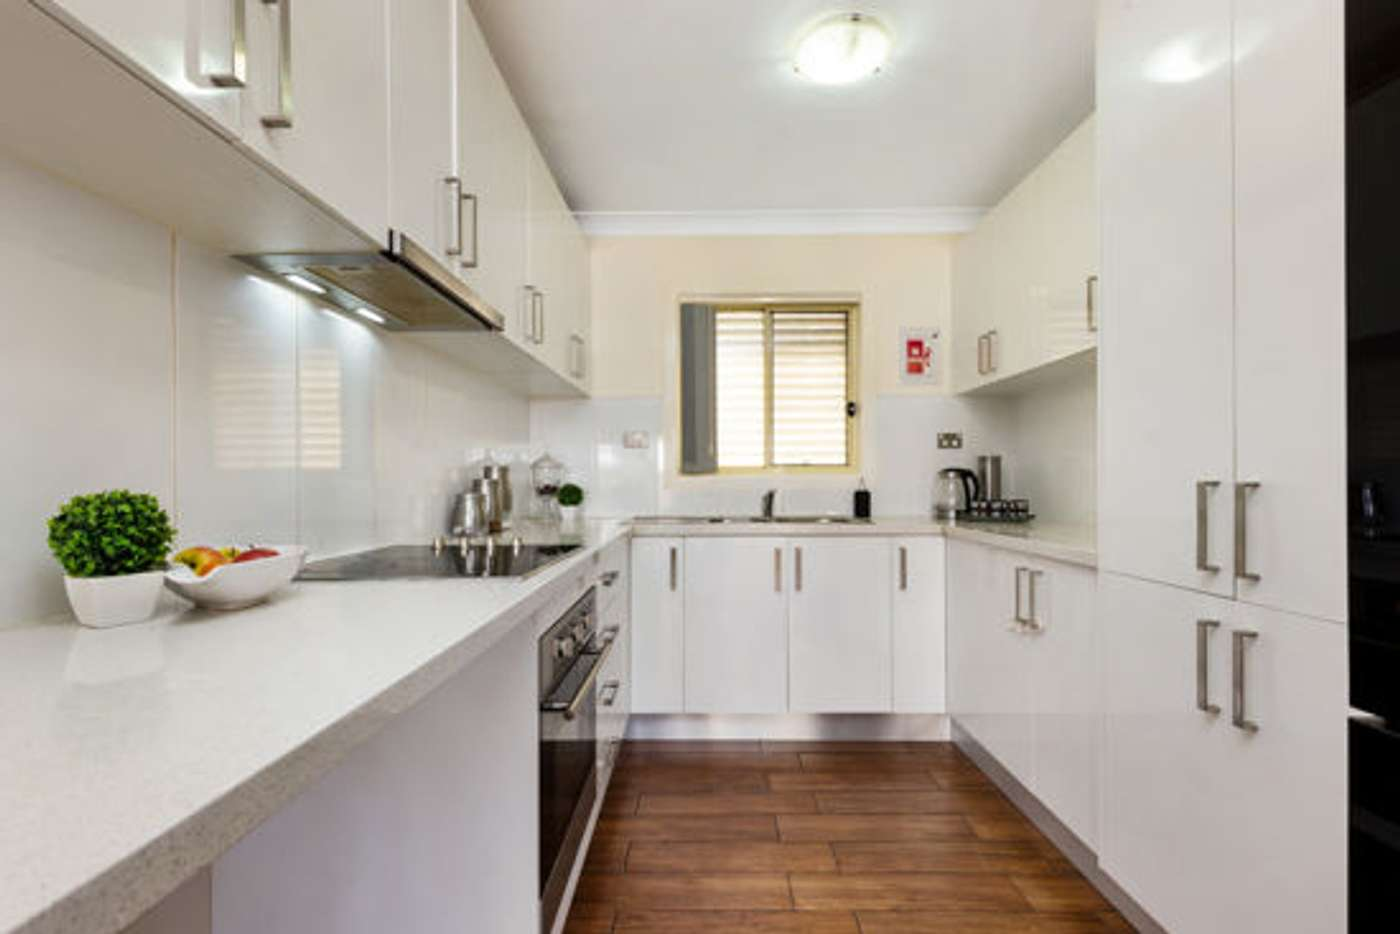 Main view of Homely house listing, 51 Hampstead Road, Auburn NSW 2144